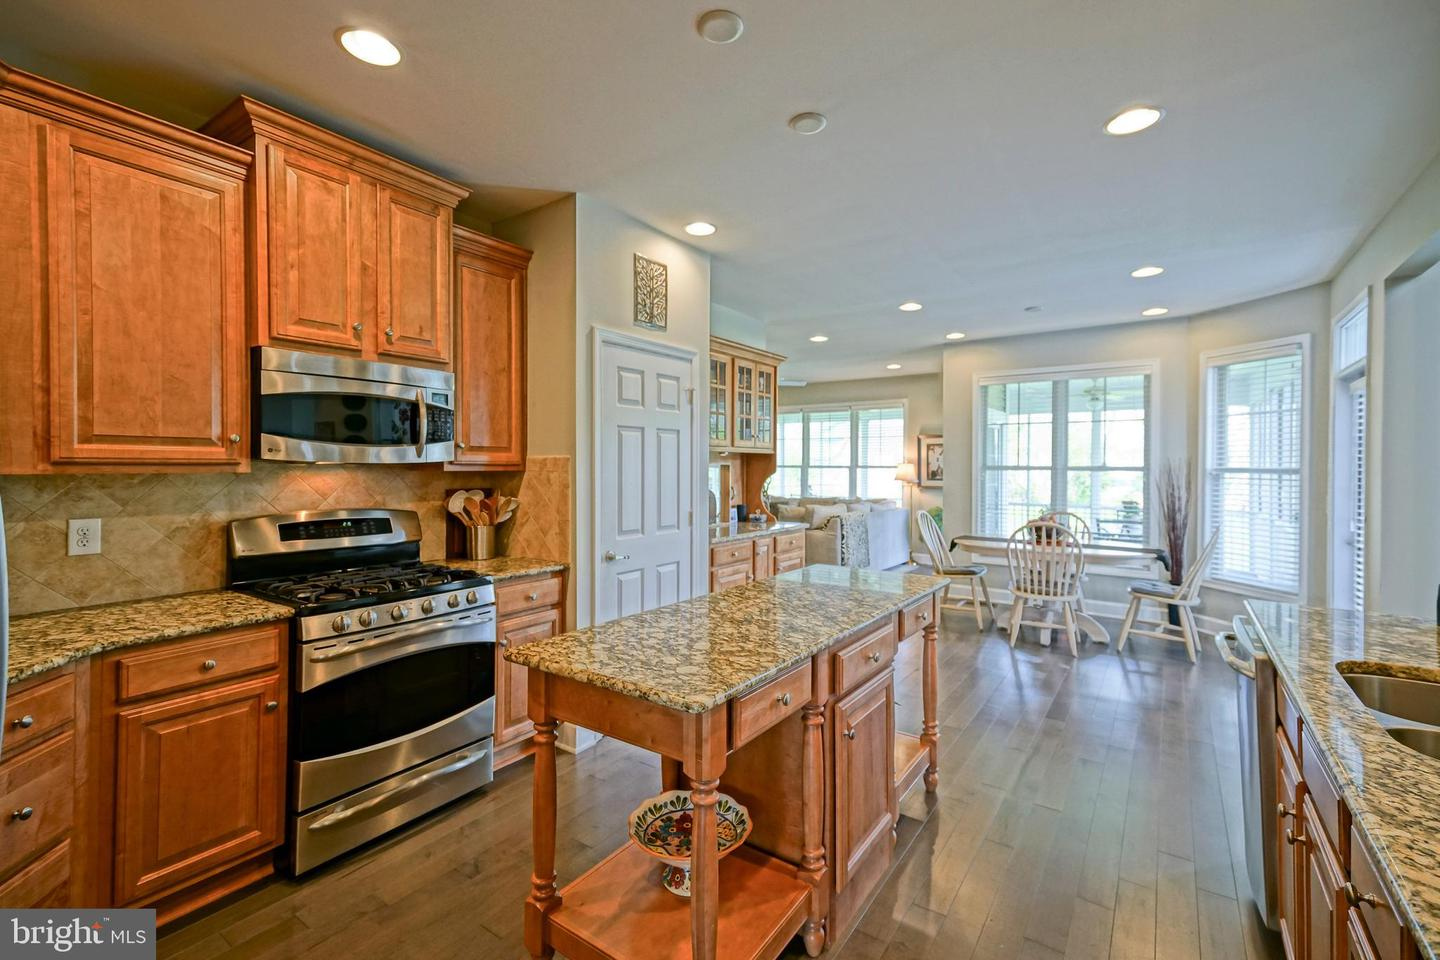 DESU139128-301667381081-2019-08-05-10-43-56 35222 Overfalls Dr N | Lewes, DE Real Estate For Sale | MLS# Desu139128  - Lee Ann Group